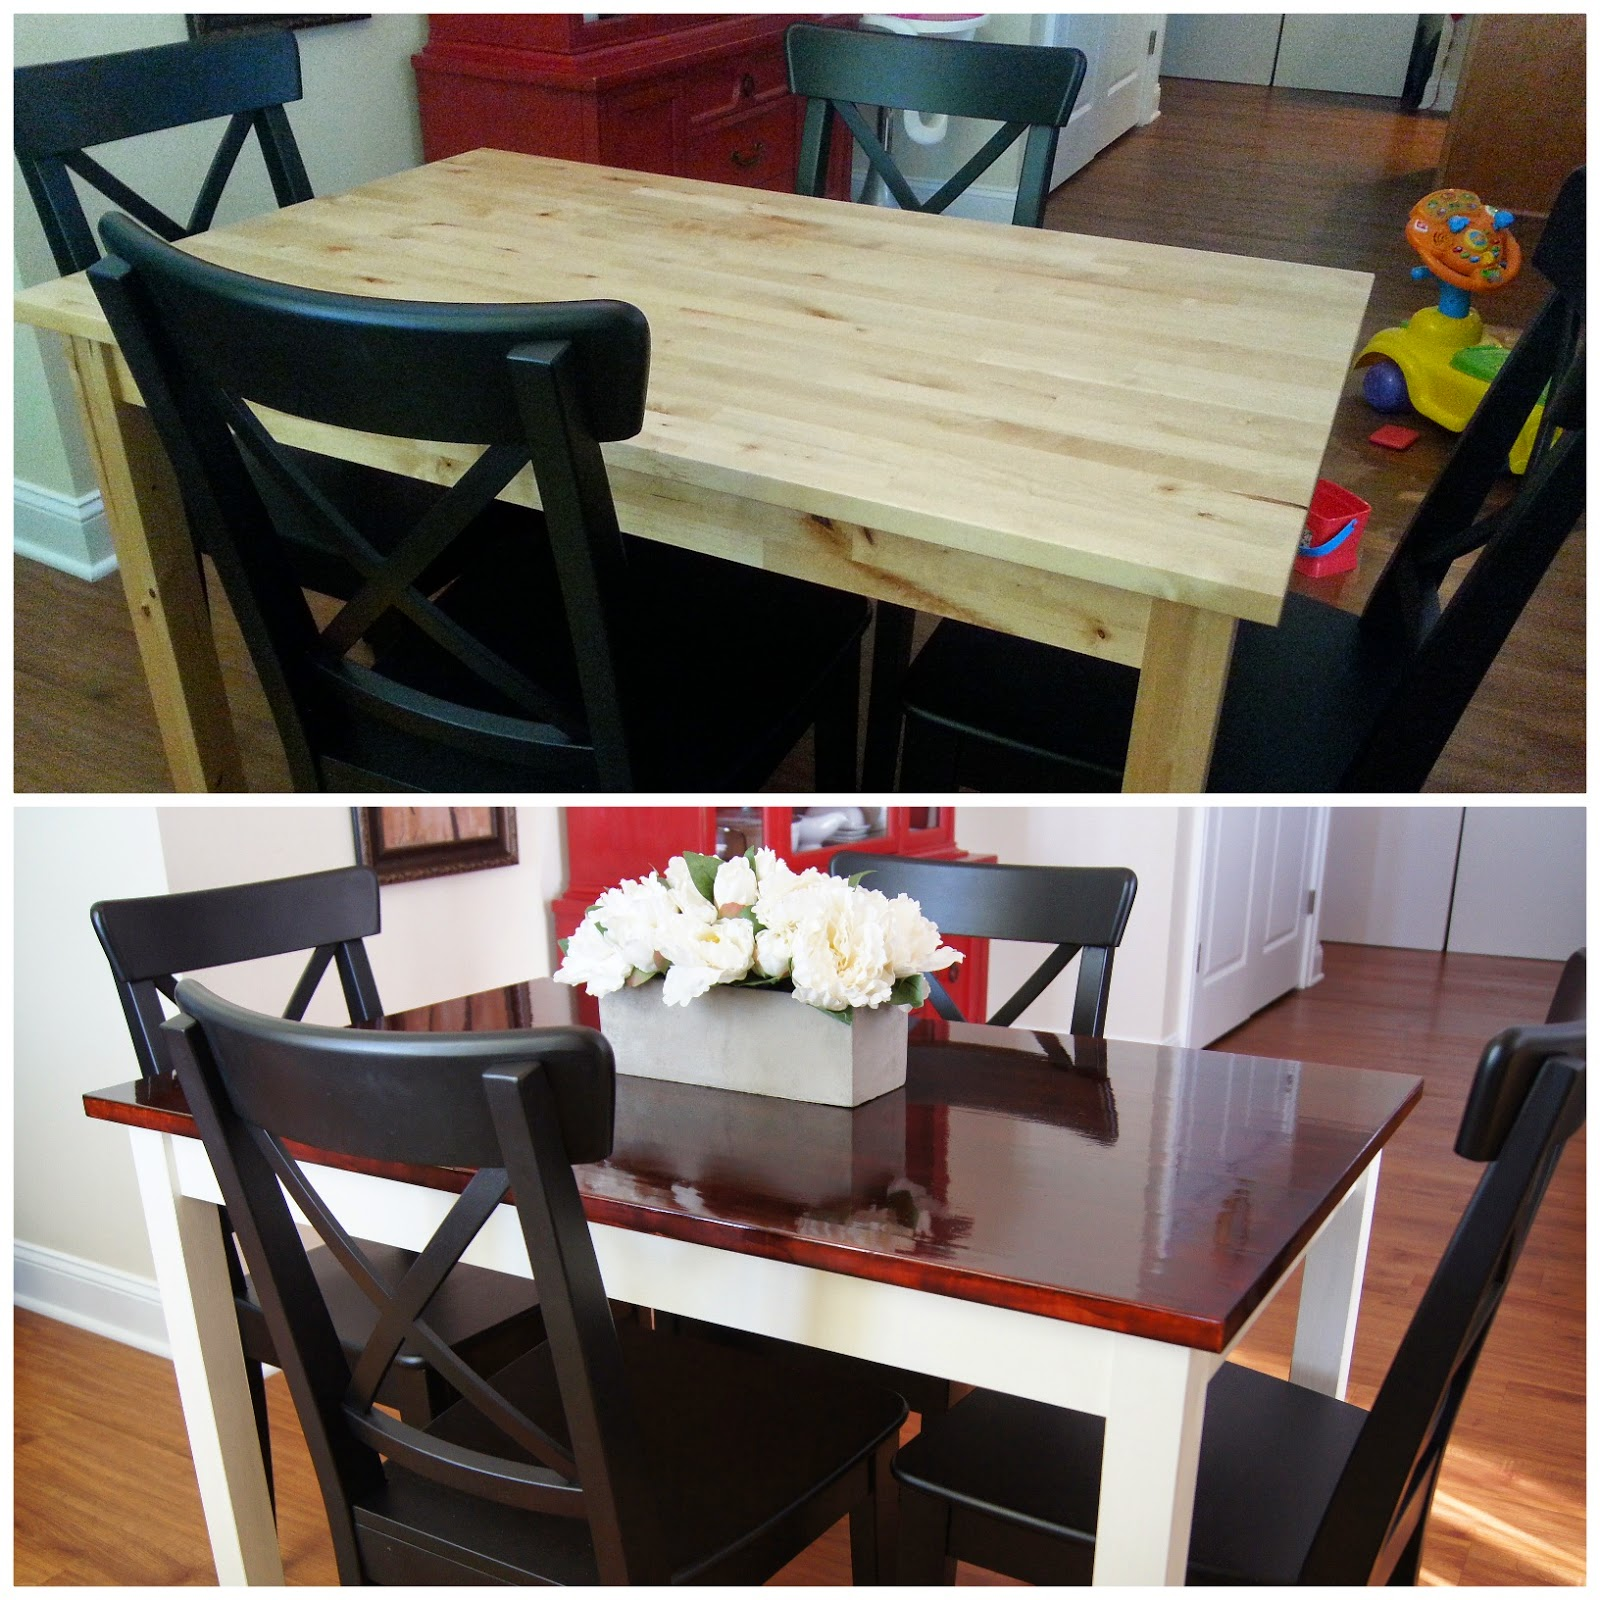 Diy dining table makeover - Table Chairs Centerpiece Can T Forget The Baby Car